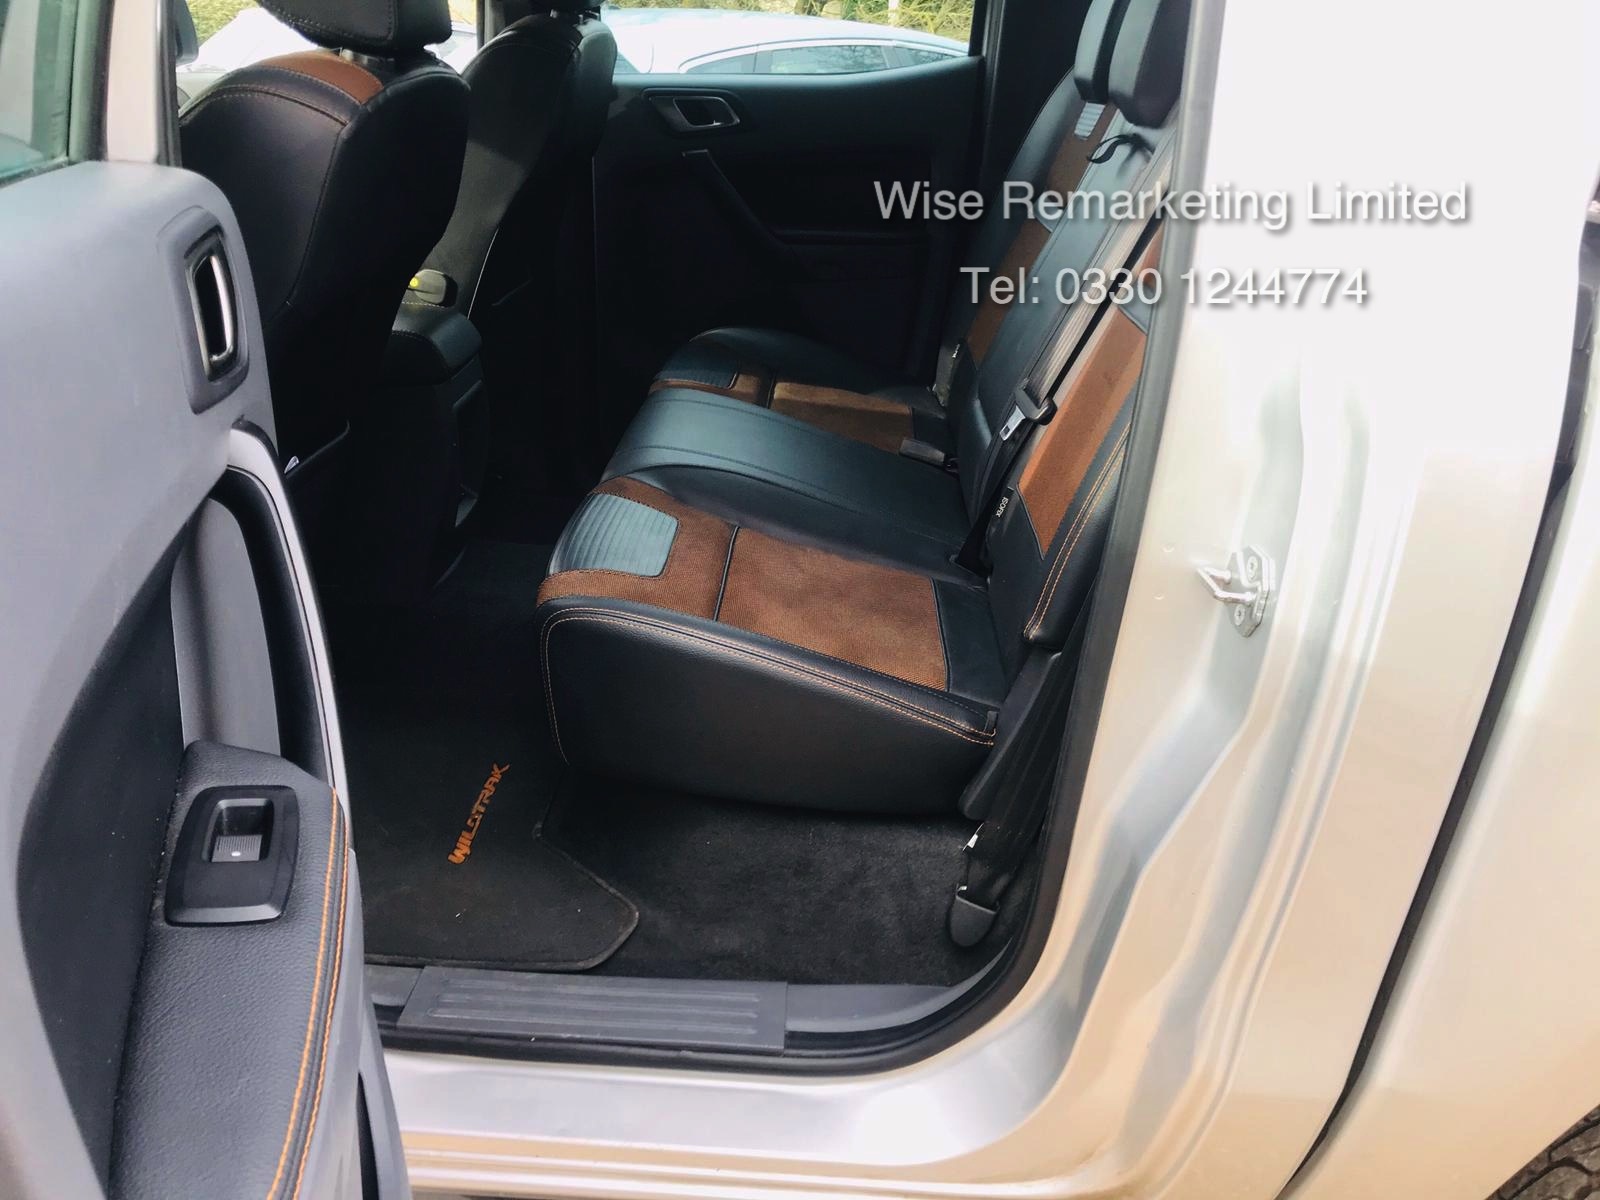 Ford Ranger 3.2 TDCI WILDTRAK - Auto - 2017 Model - 1 Former Keeper - 4x4 - TOP OF THE RANGE - Image 15 of 16